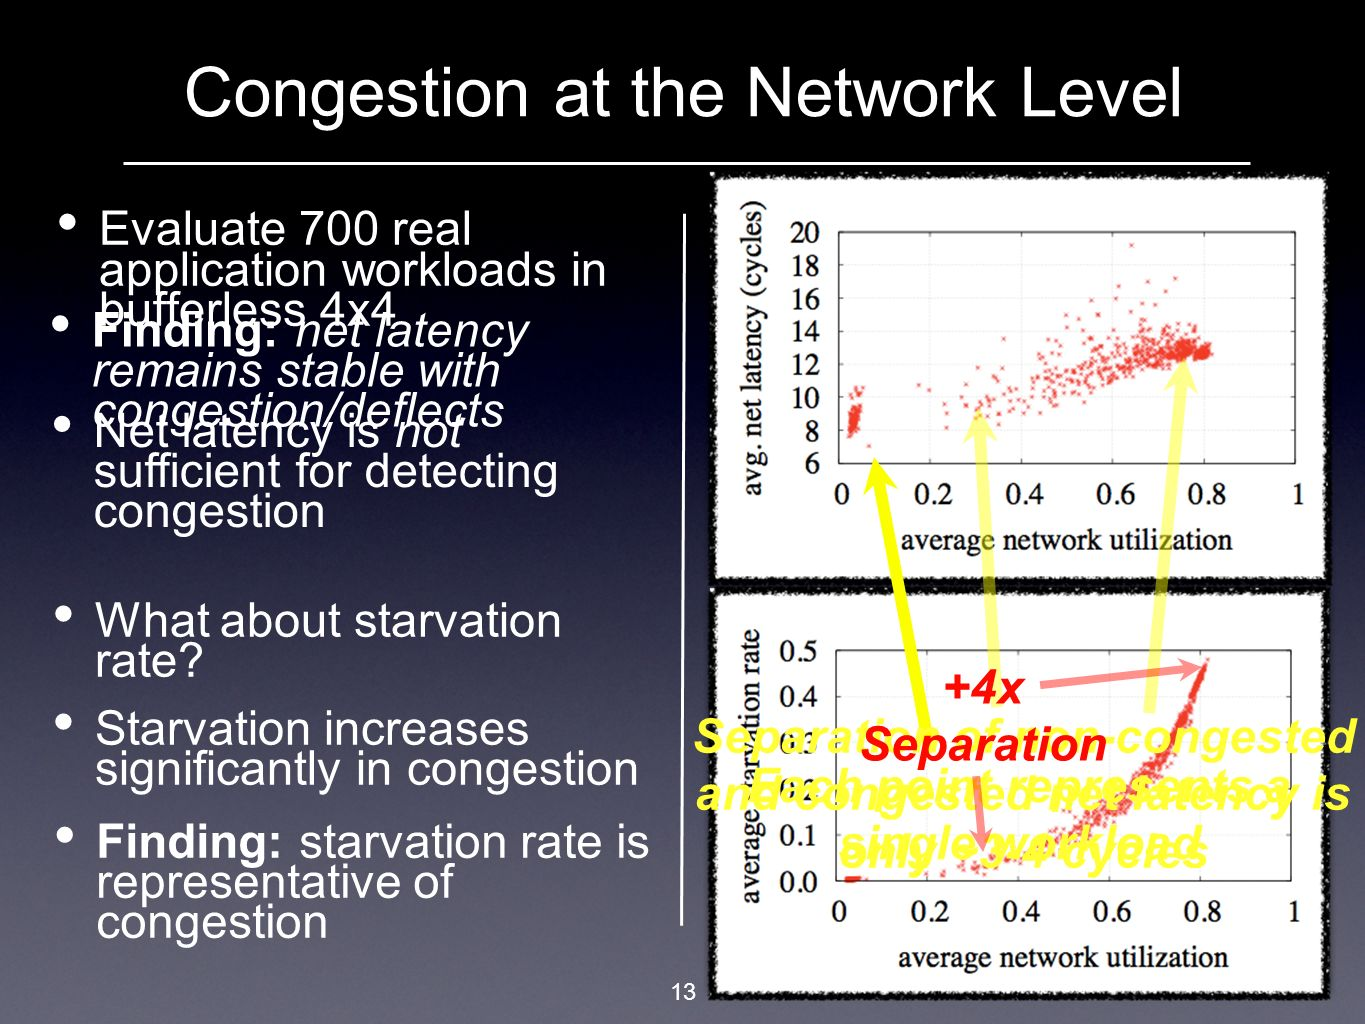 13 Congestion at the Network Level Evaluate 700 real application workloads in bufferless 4x4 Finding: net latency remains stable with congestion/defle